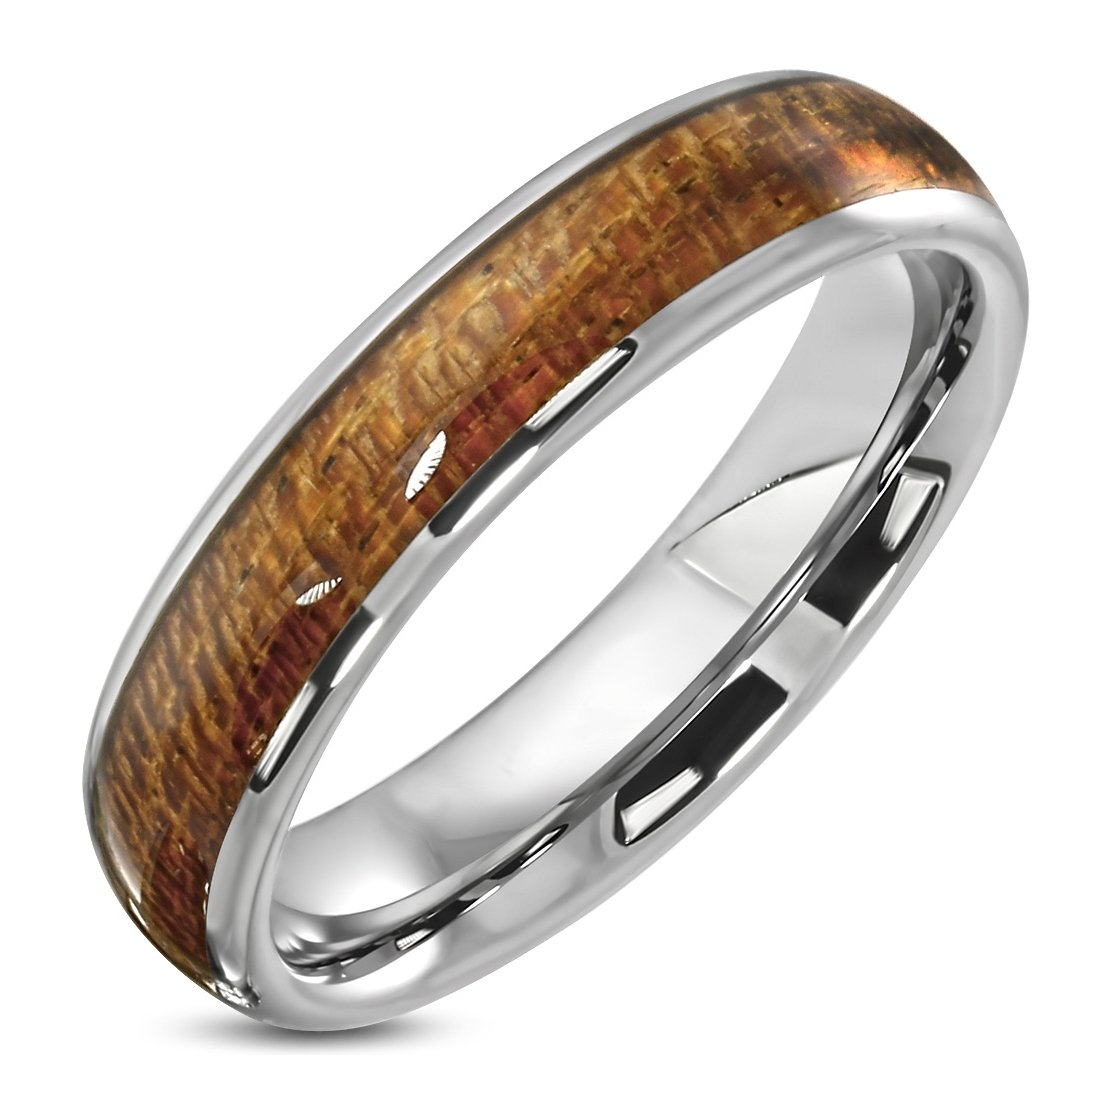 Tungsten Carbide Comfort Fit Half-Round Band Ring with Wood Inlay